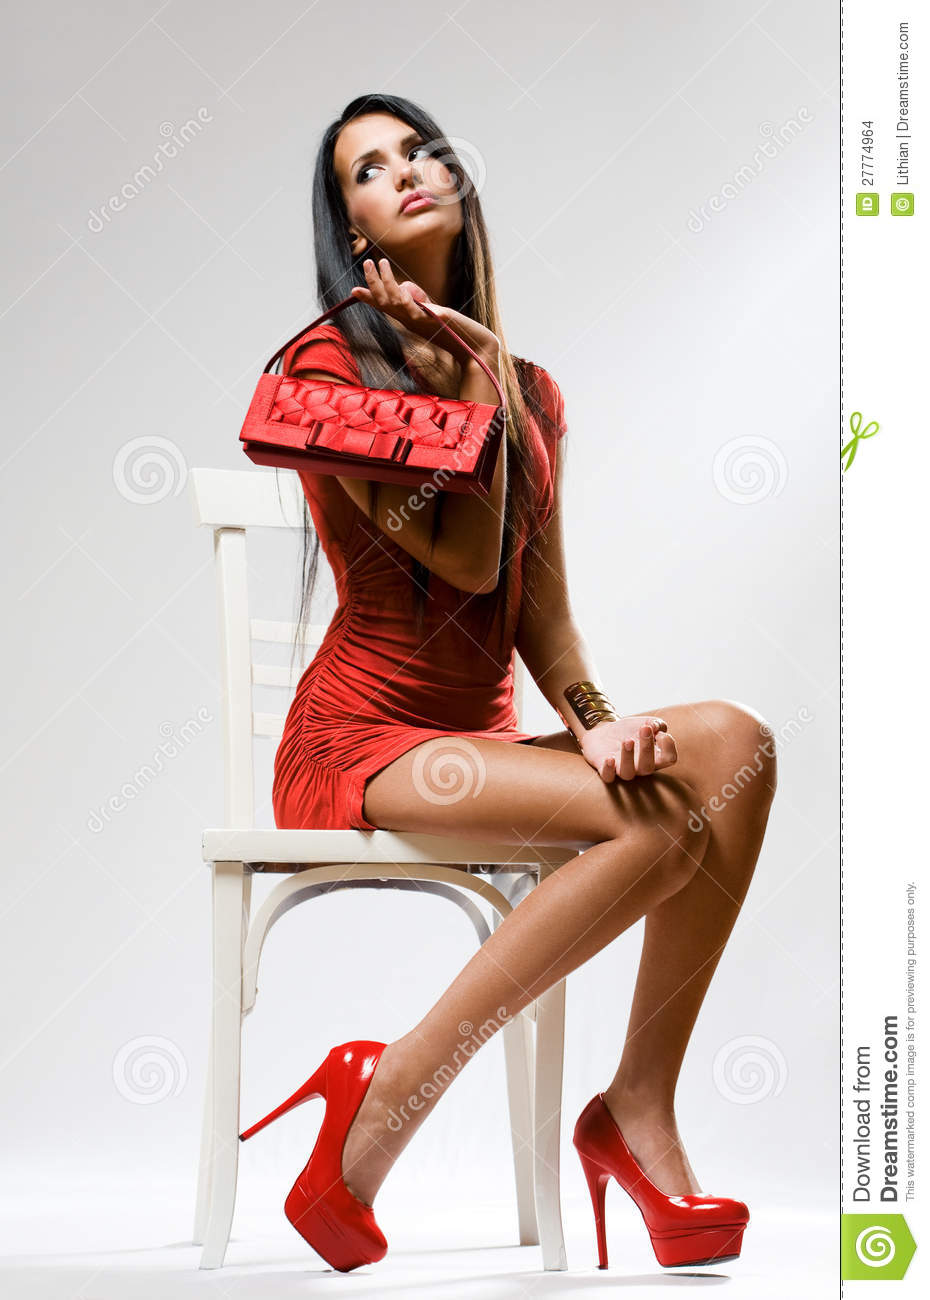 woman sitting in chair small accent chairs uk high red fashion. stock images - image: 27774964